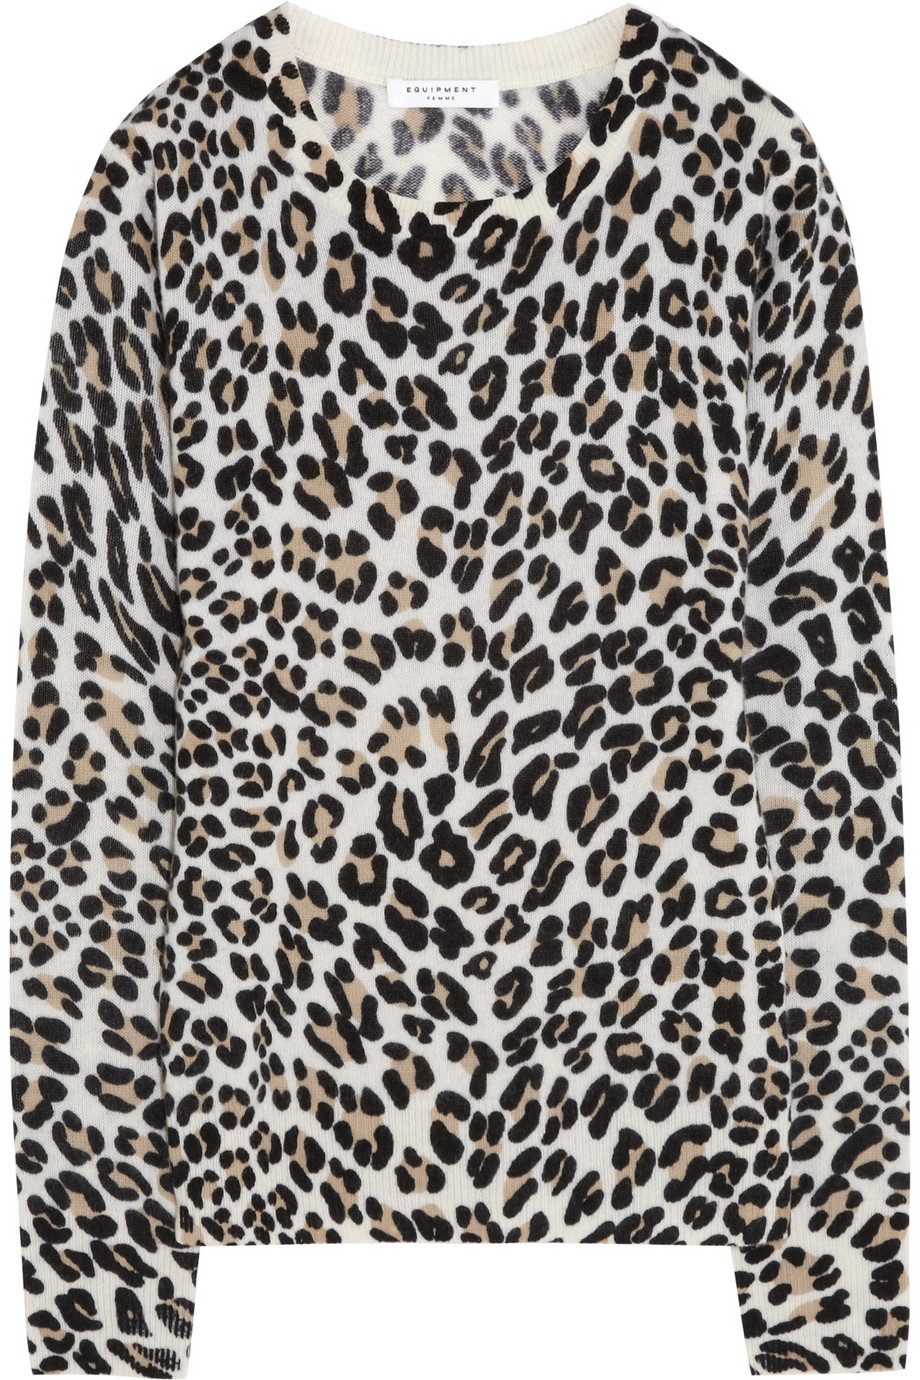 Equipment Shane Leopard Print Cashmere Sweater in Black | Lyst